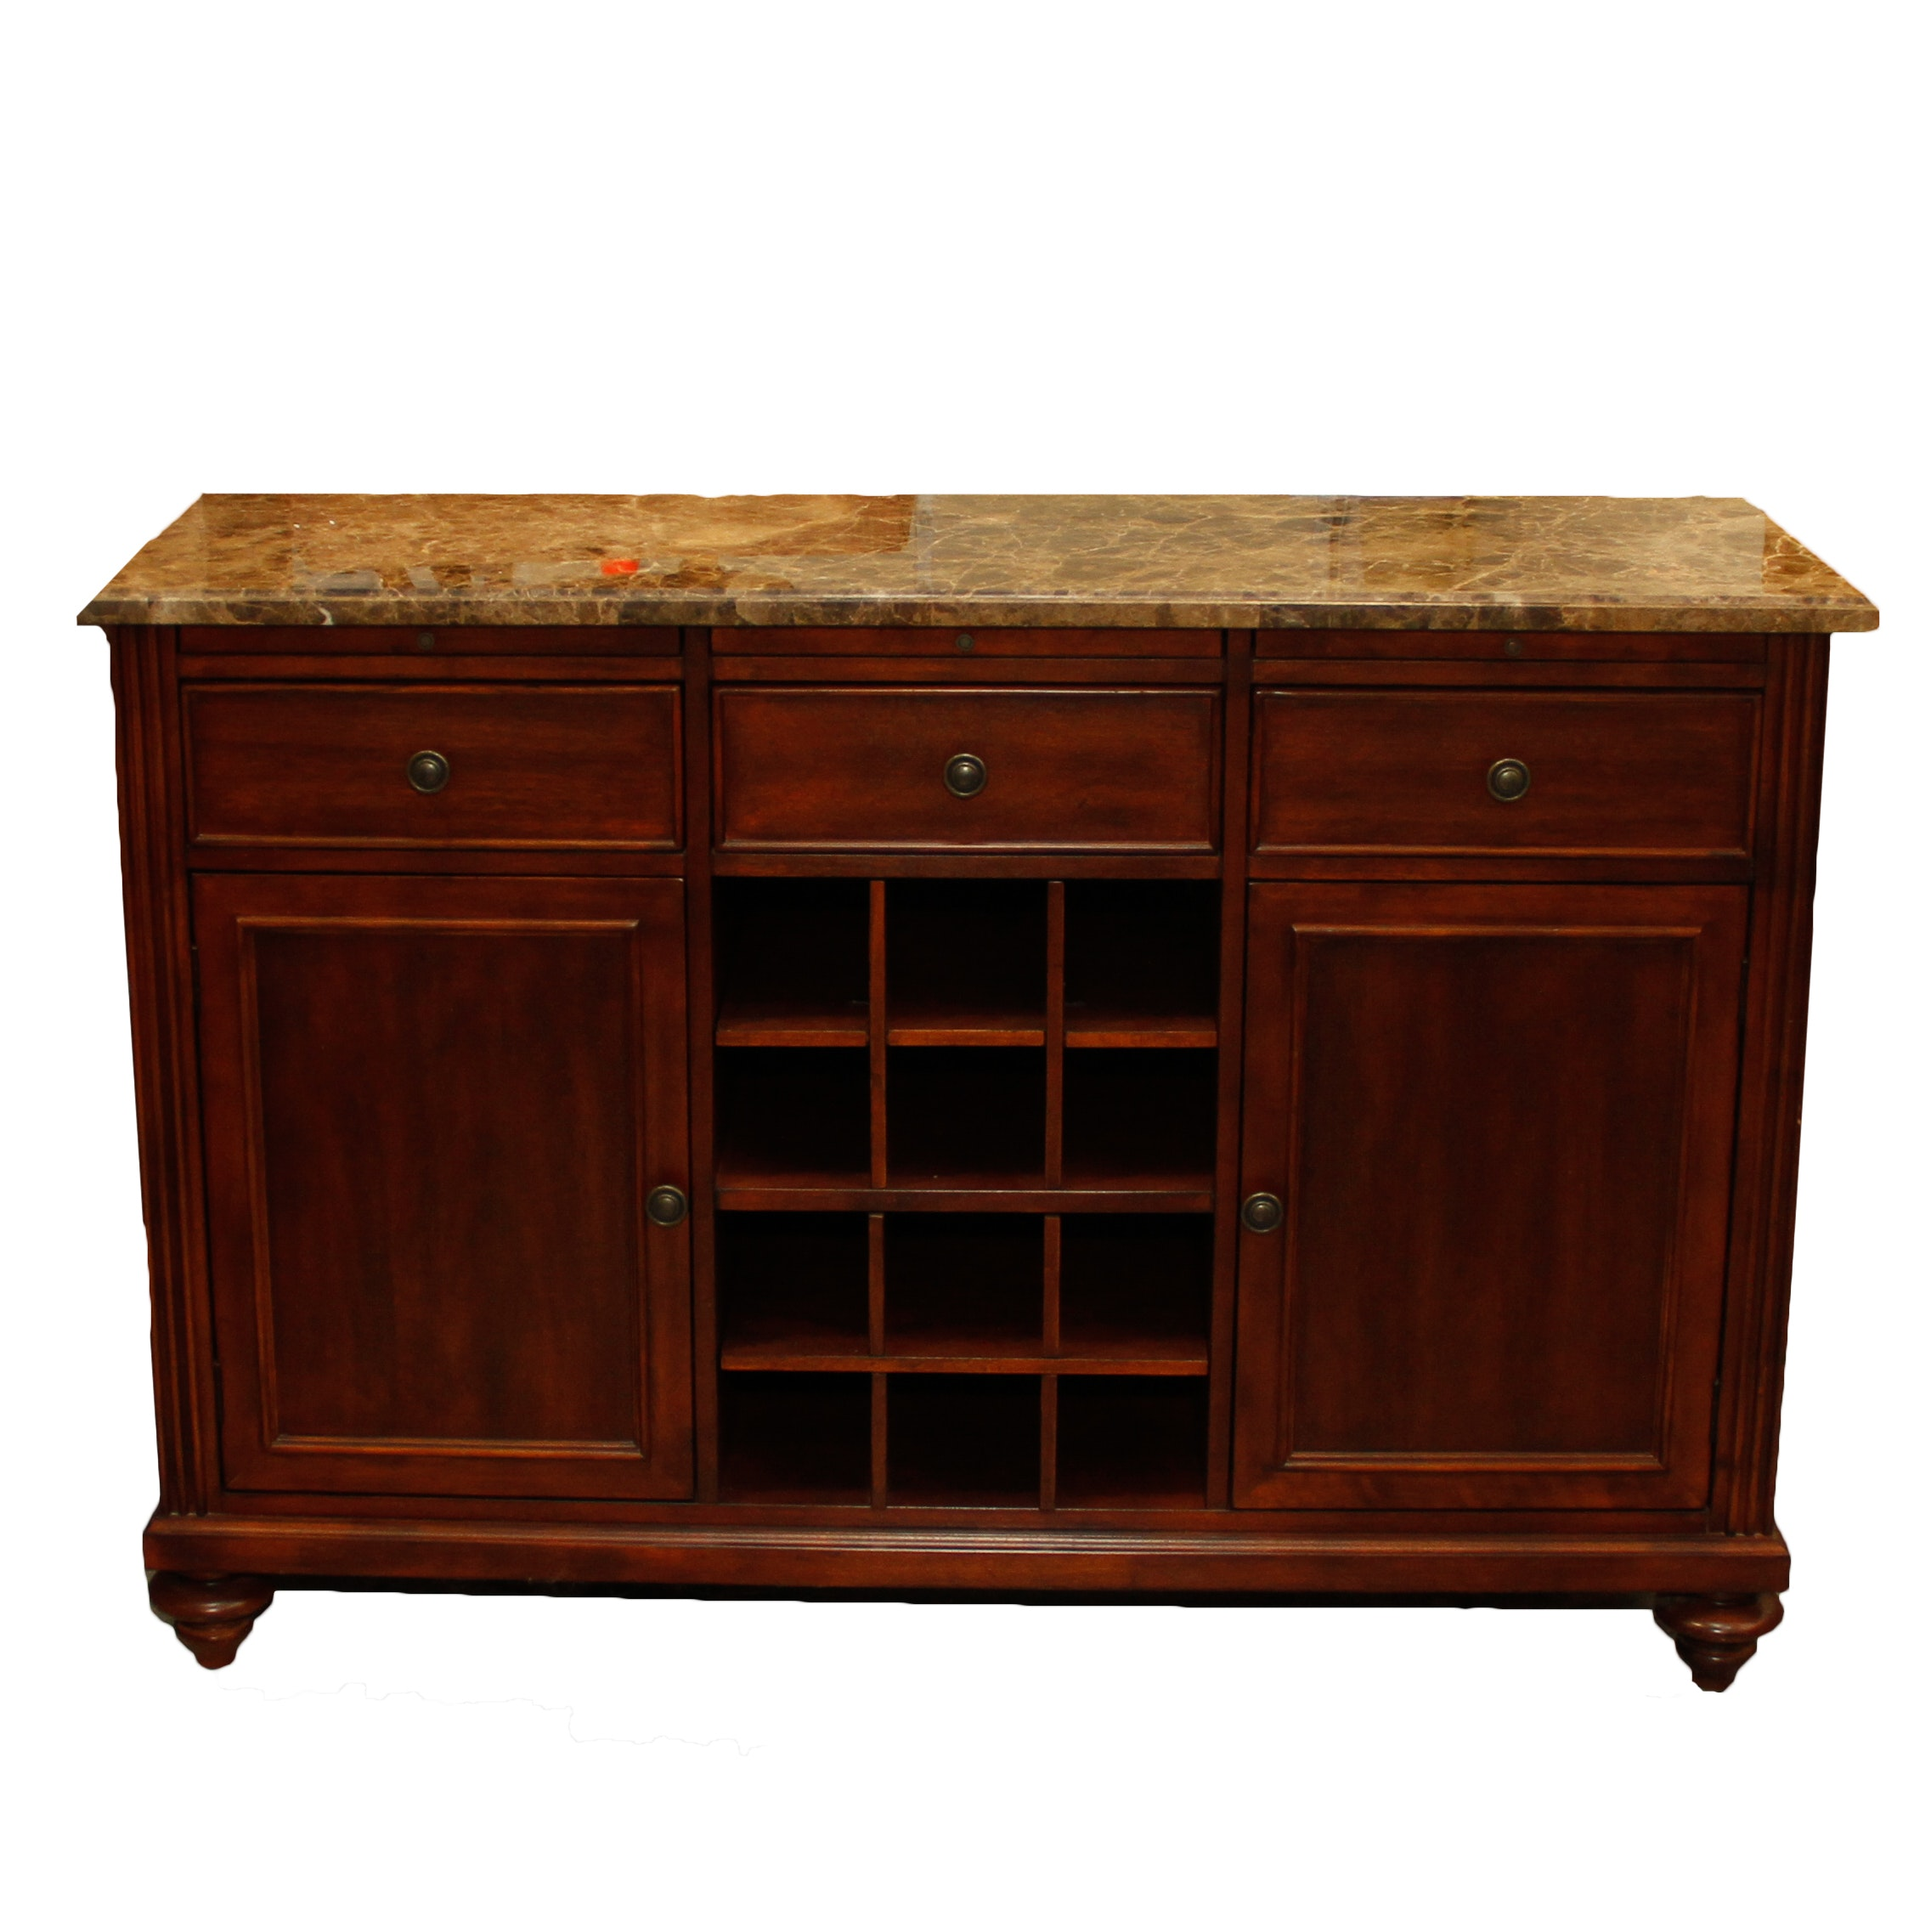 Charmant Shenandoah Valley Furniture Company Marble Top Buffet ...